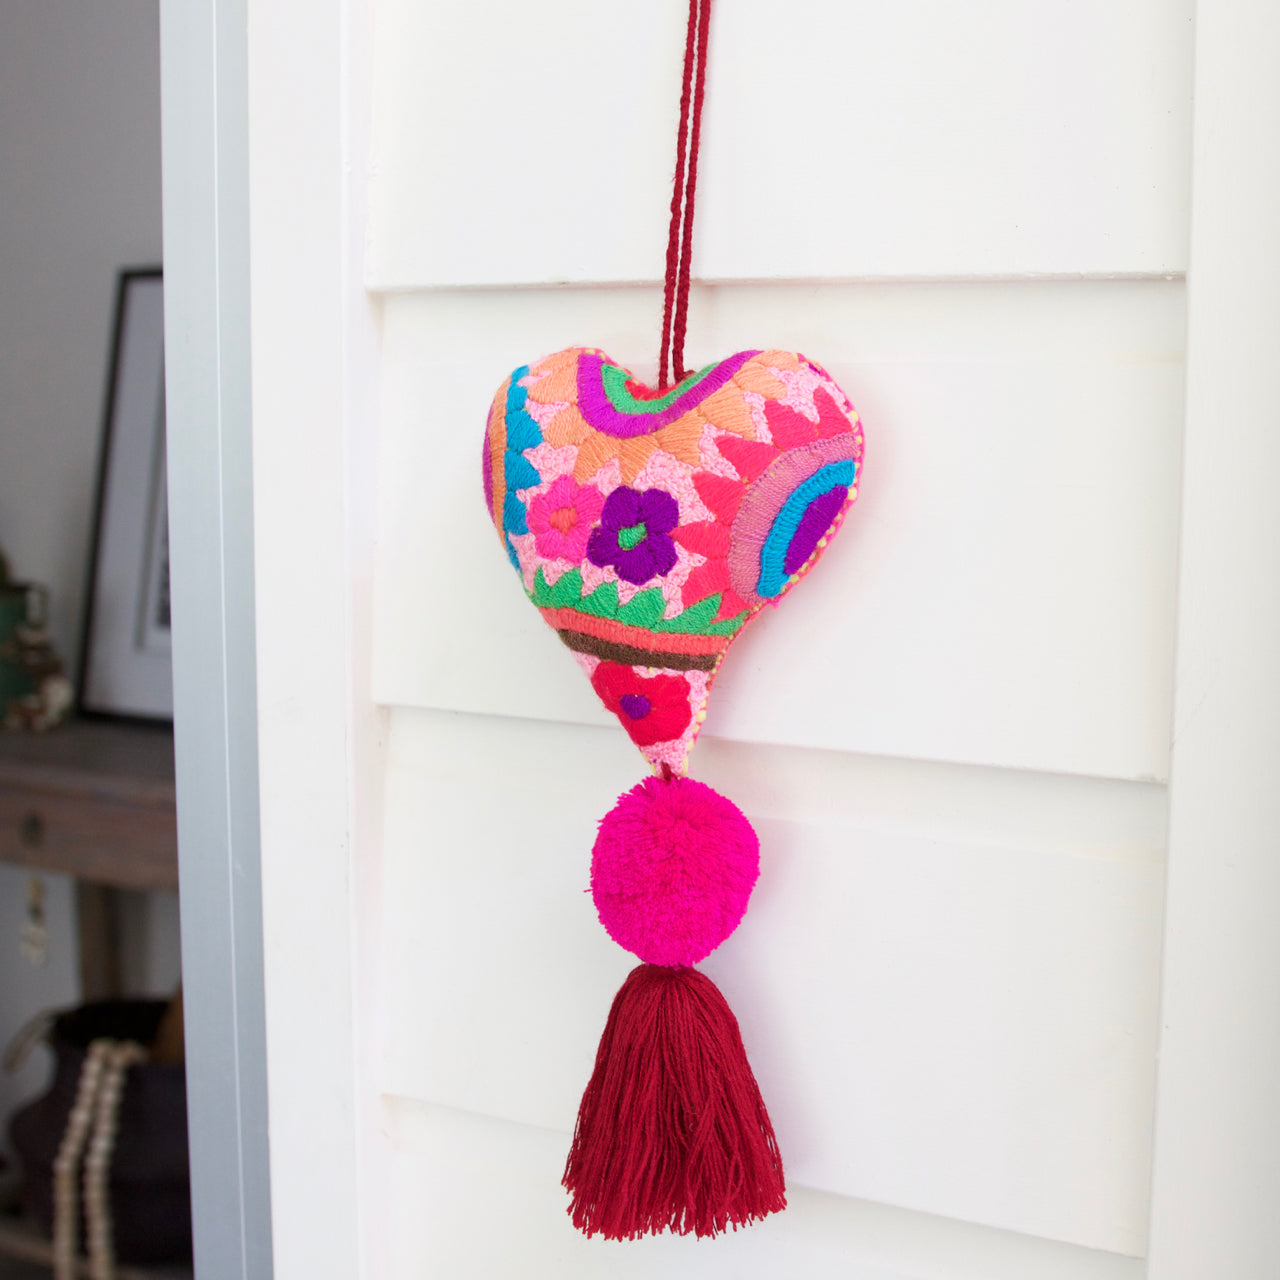 Corazon Pom Pom 48  Decor Pink - Cielo Collective handmade Mexico Guatemala